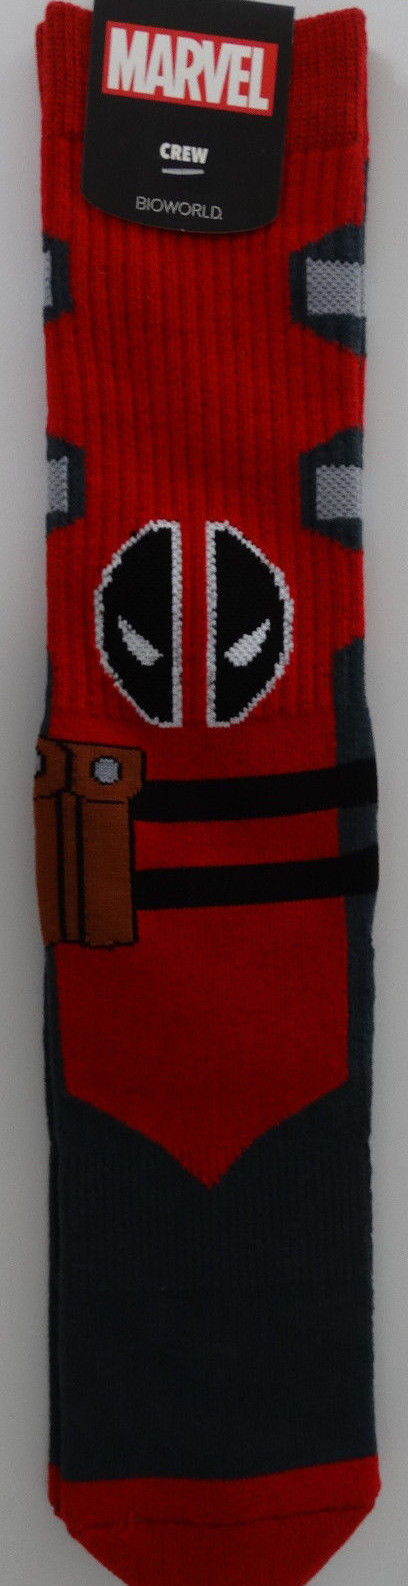 Deadpool Suit Up Costume Marvel Comics Adult Crew Socks